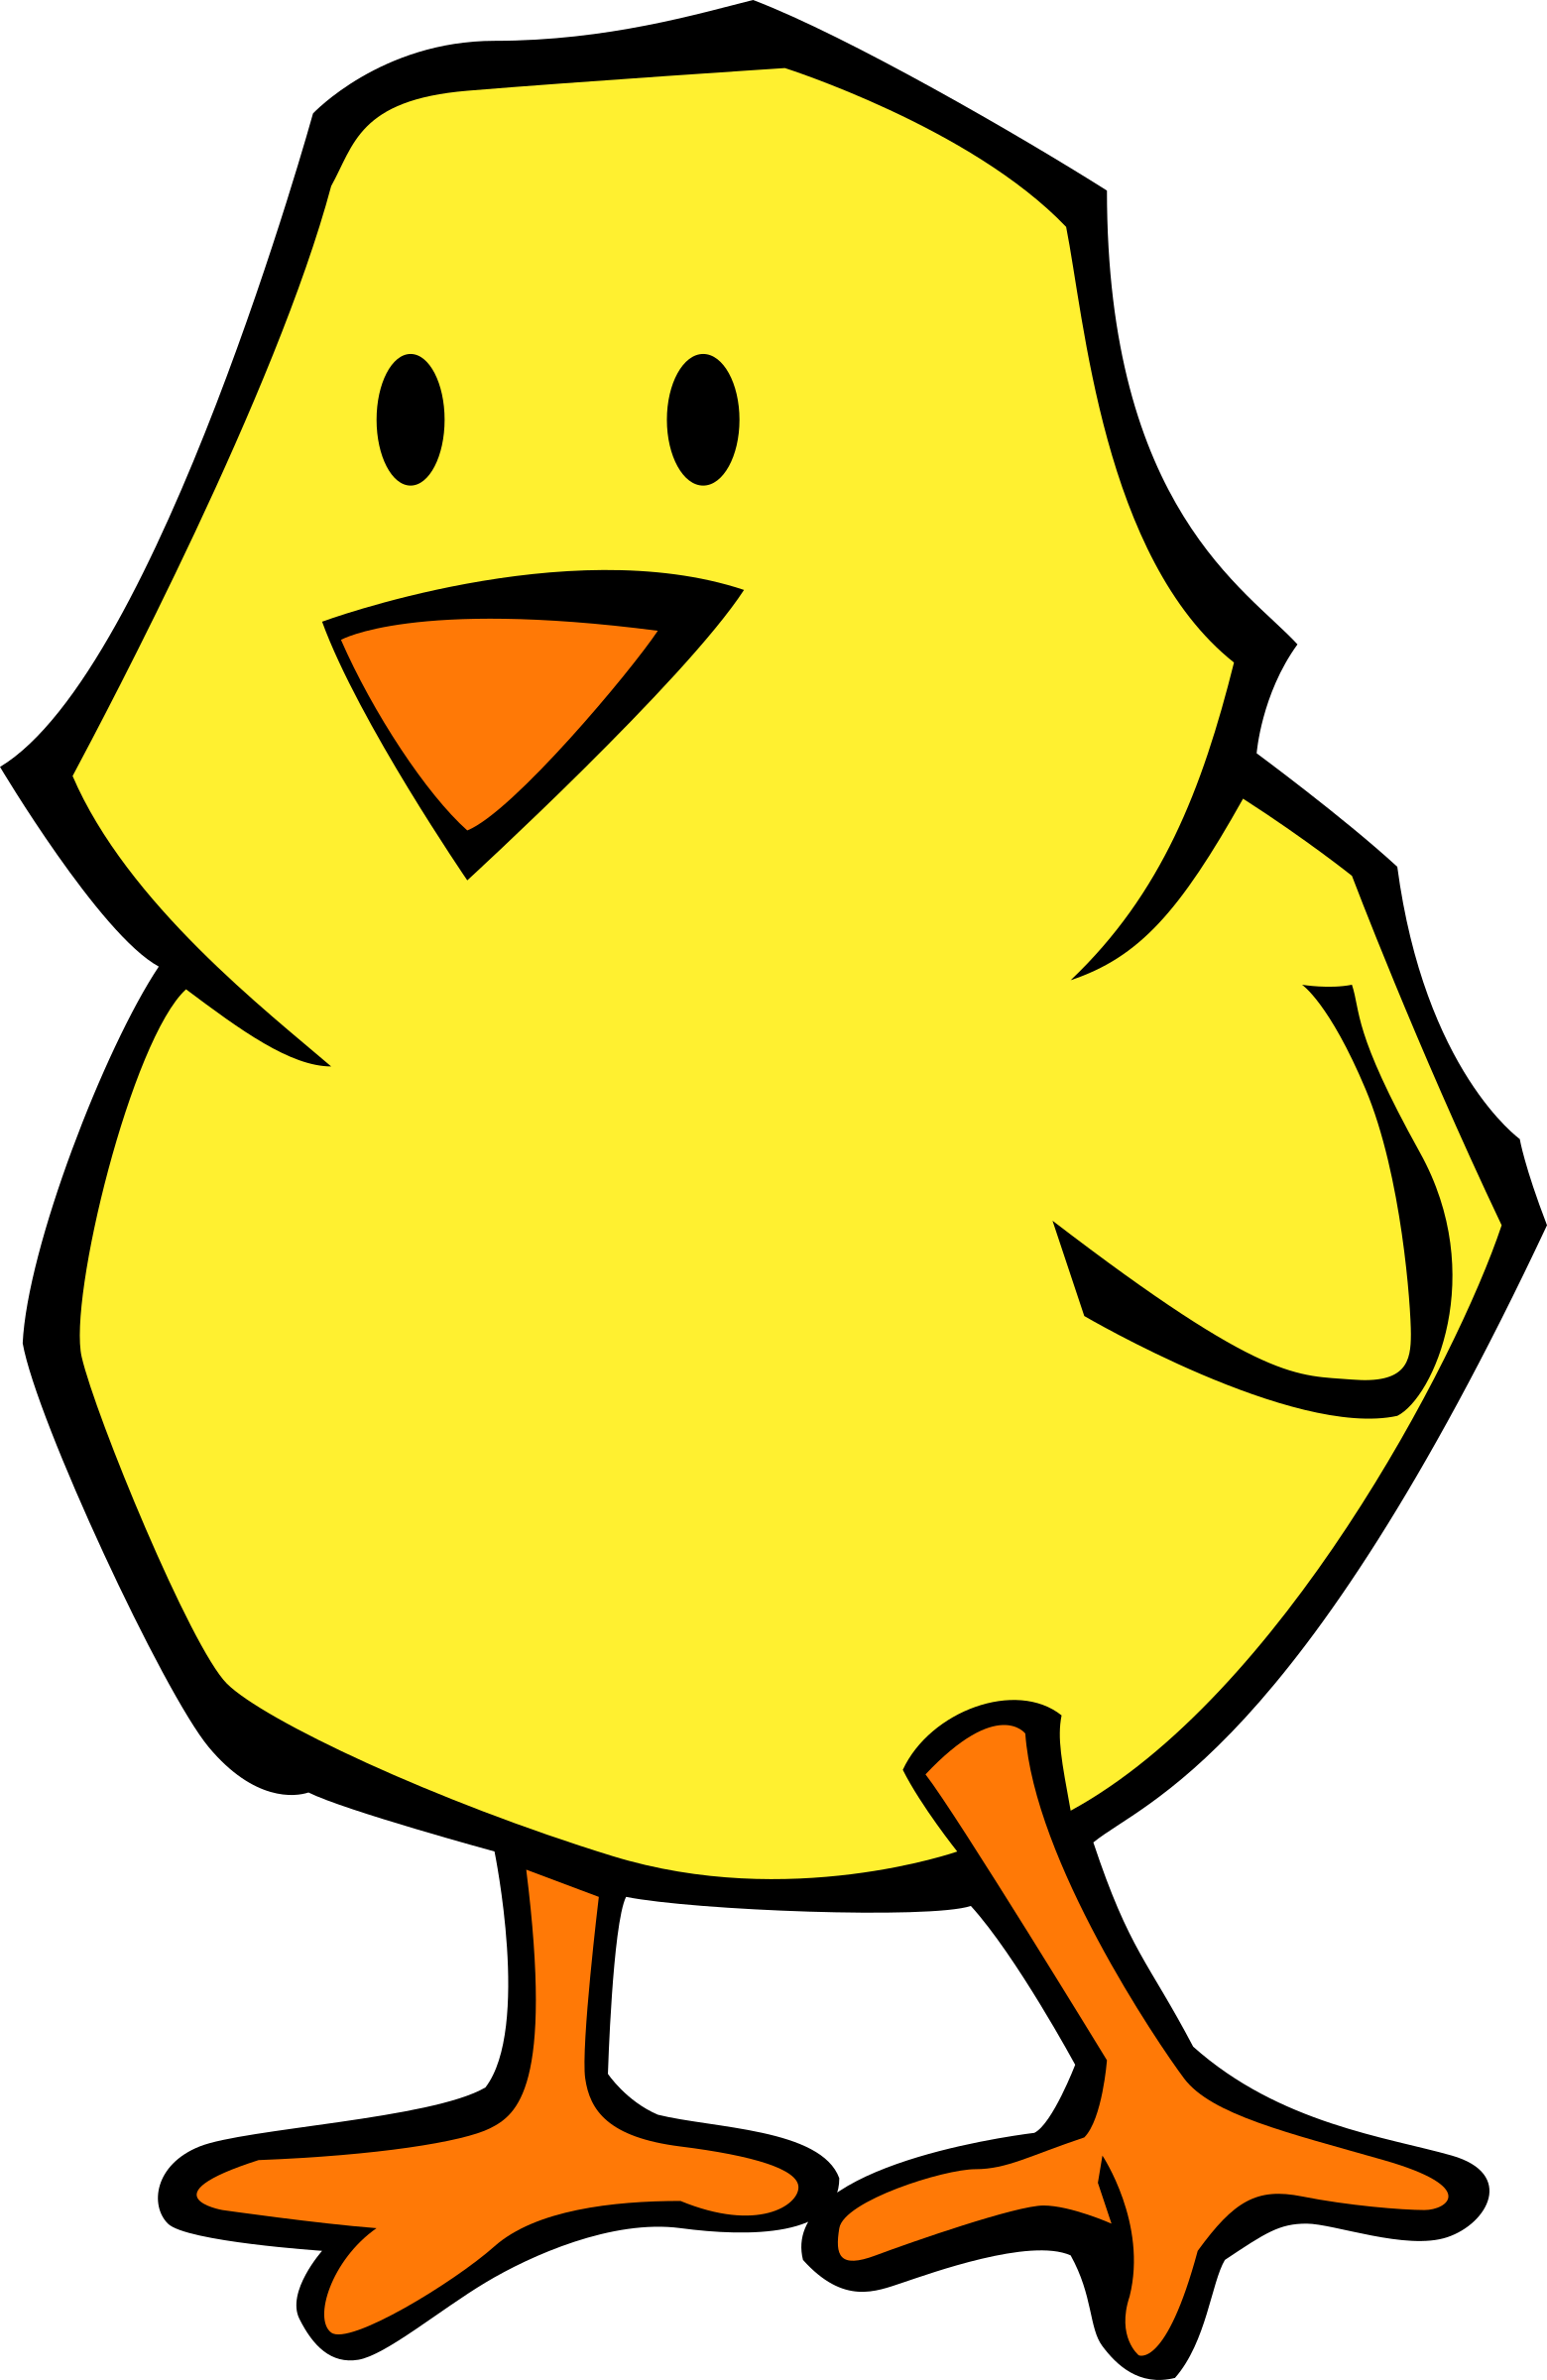 Wet clipart chick. Flat colors icons png